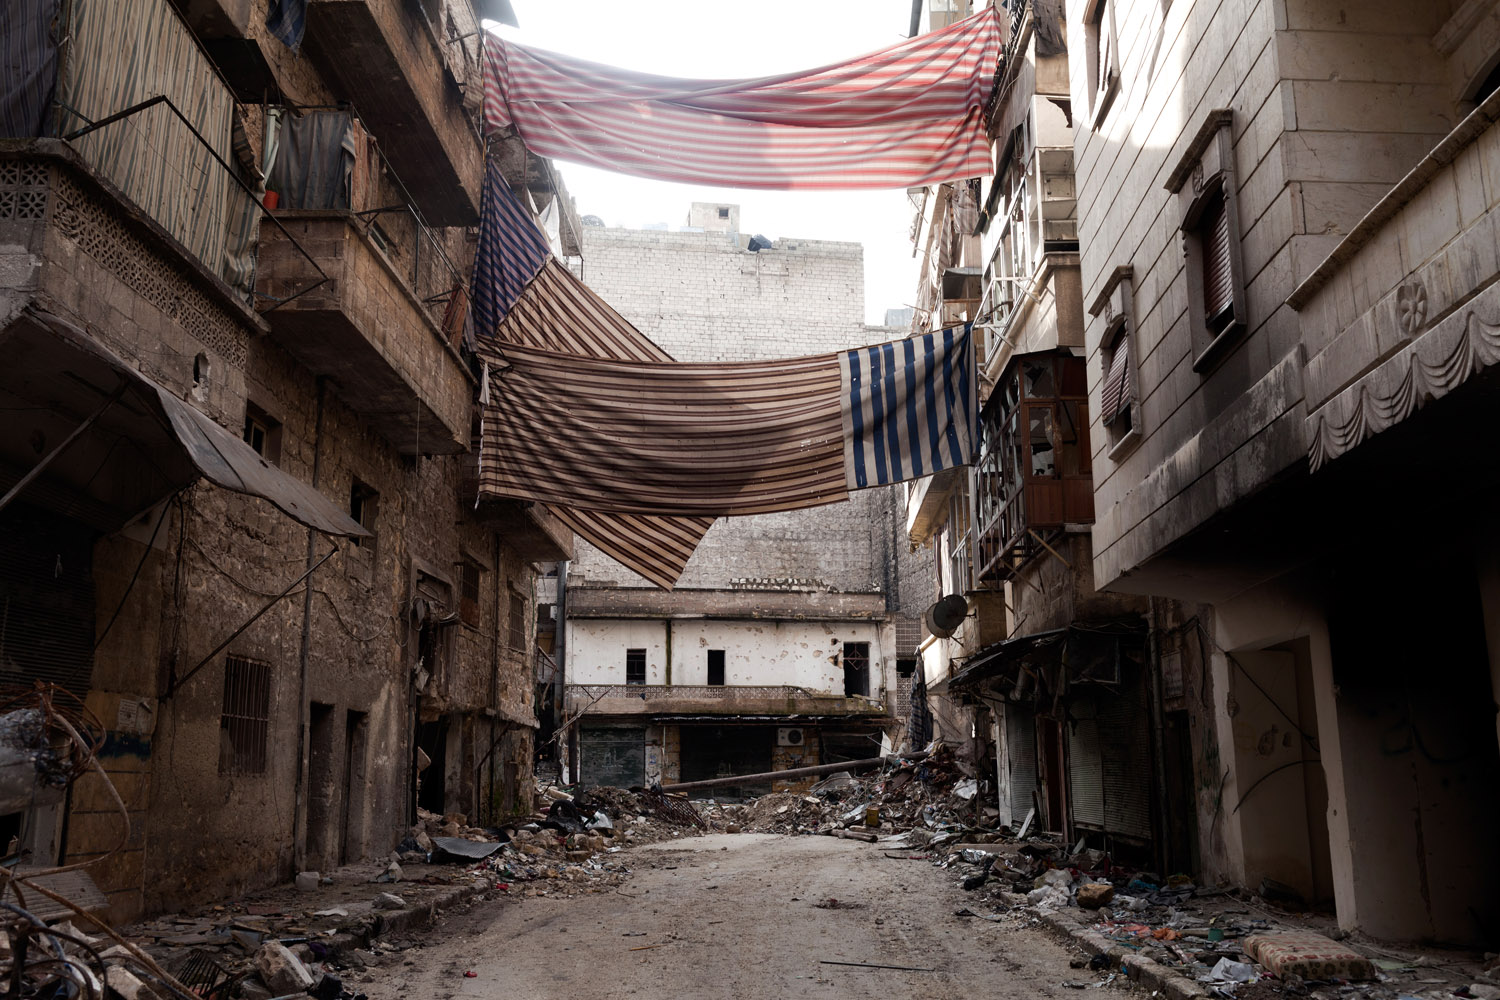 Curtains and drapes, hung along the streets of the Syrian city of Aleppo, act as veils for the city's residents, providing safe passage from the snipers throughout the city.